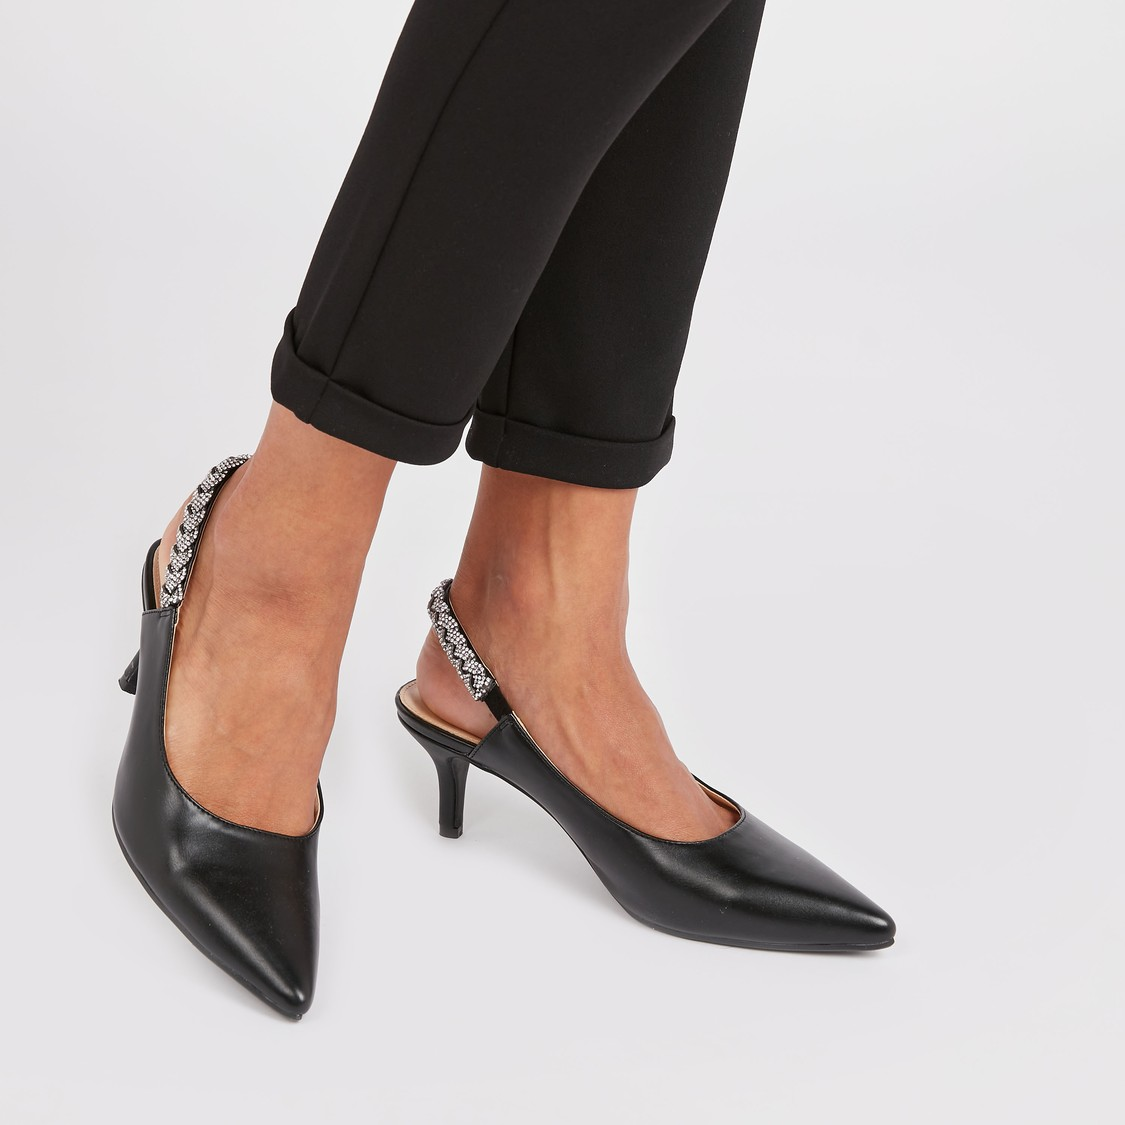 Textured Shoes with Studded Slingback and Kitten Heels